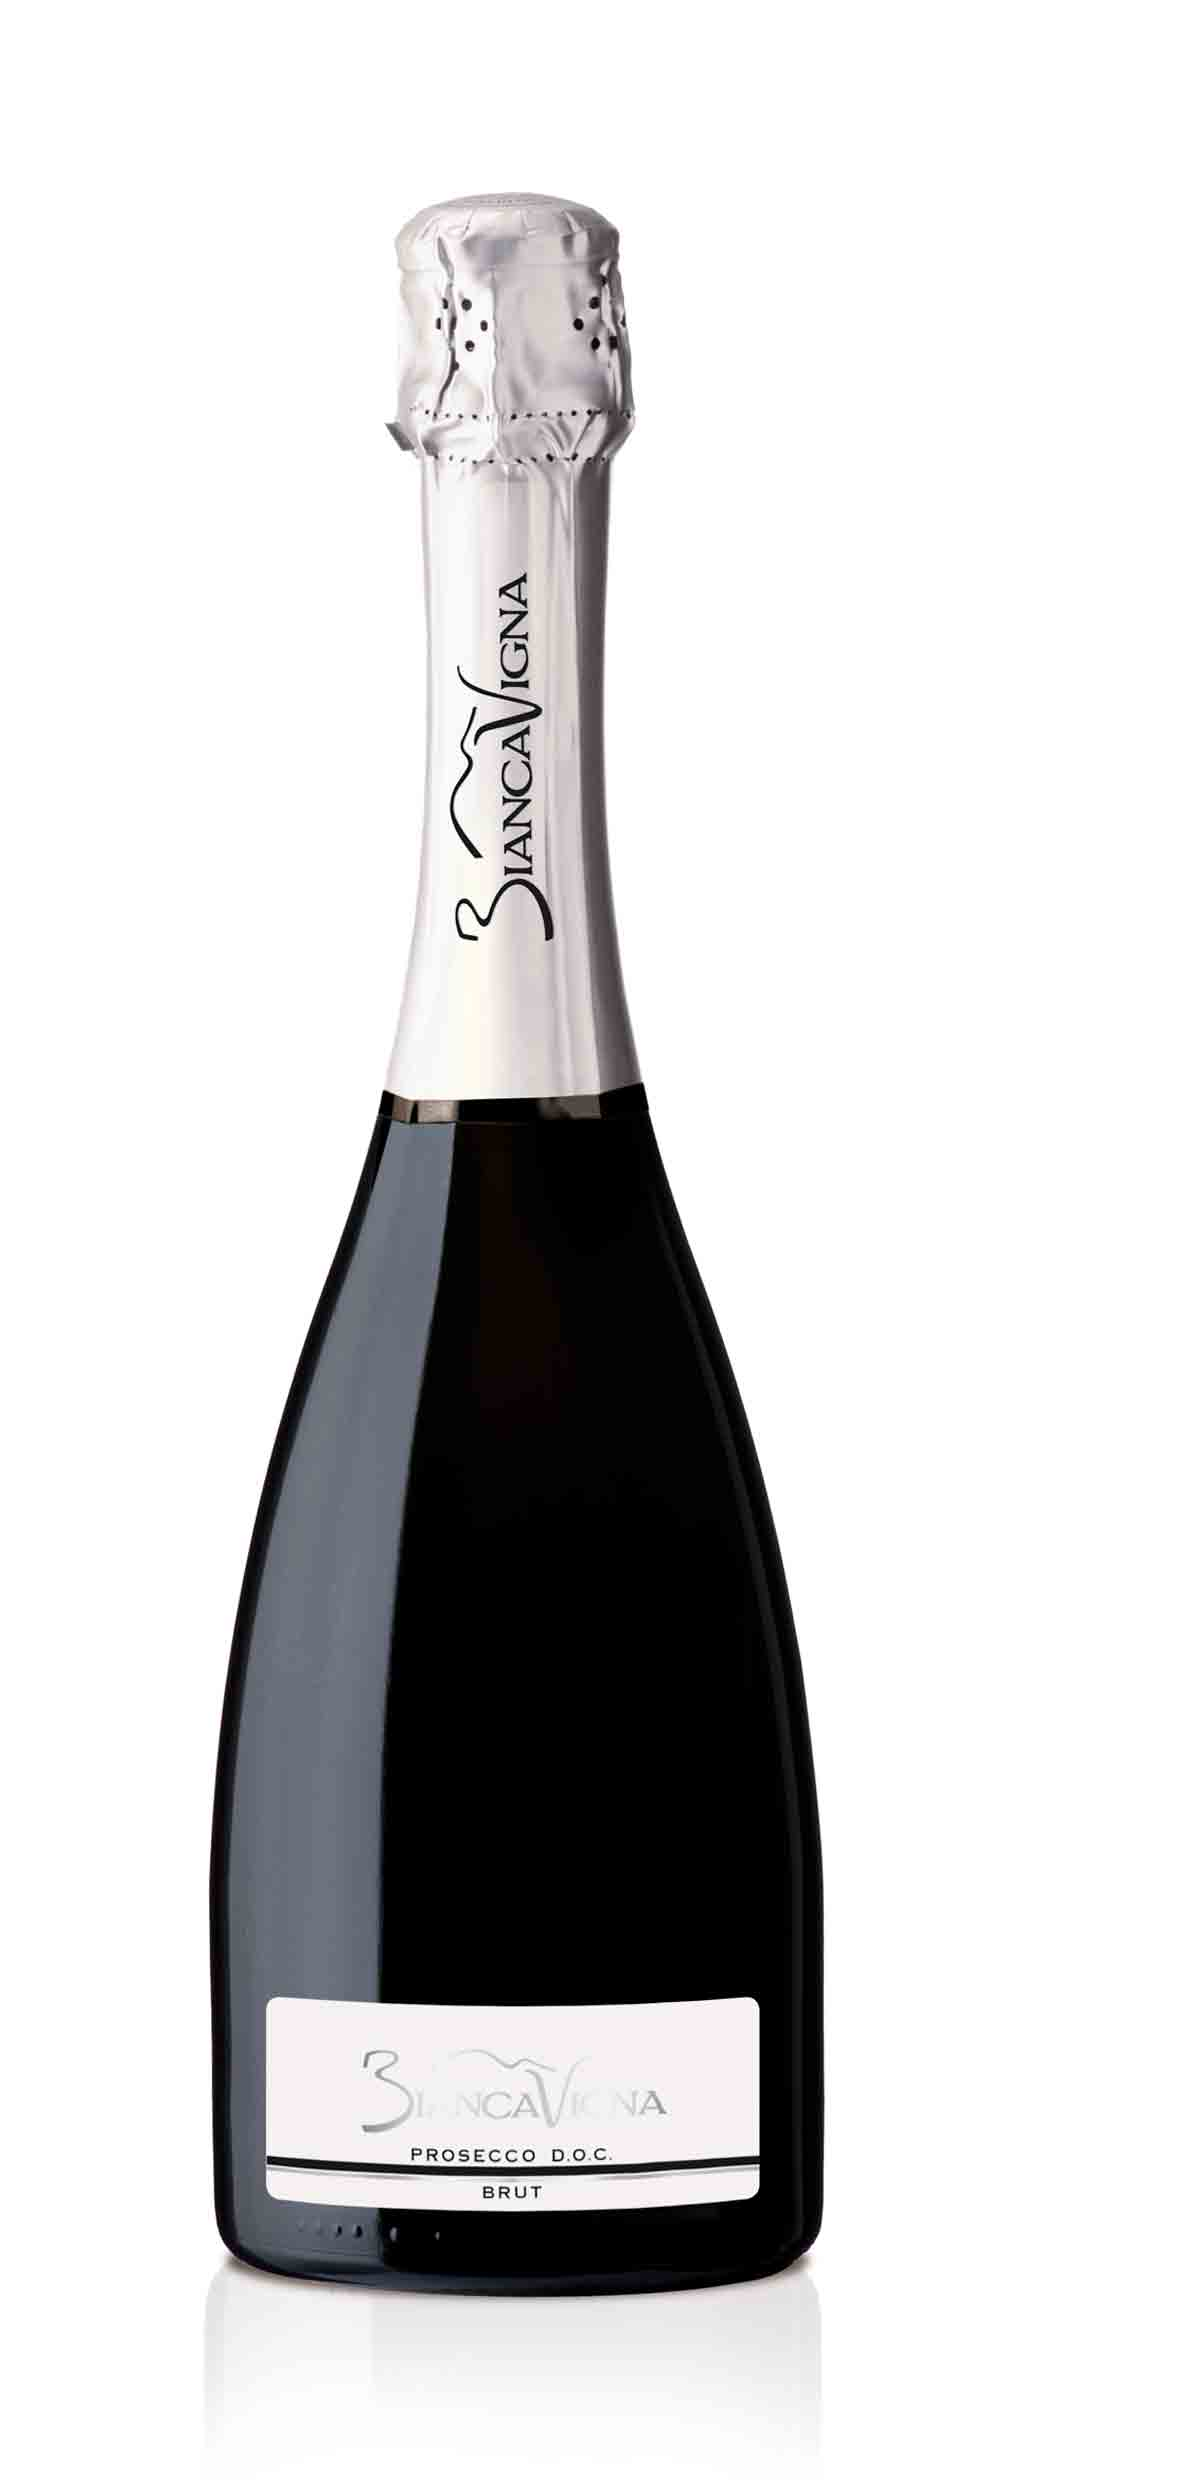 Wine-Bianca-Vigna-single-Brut.jpg